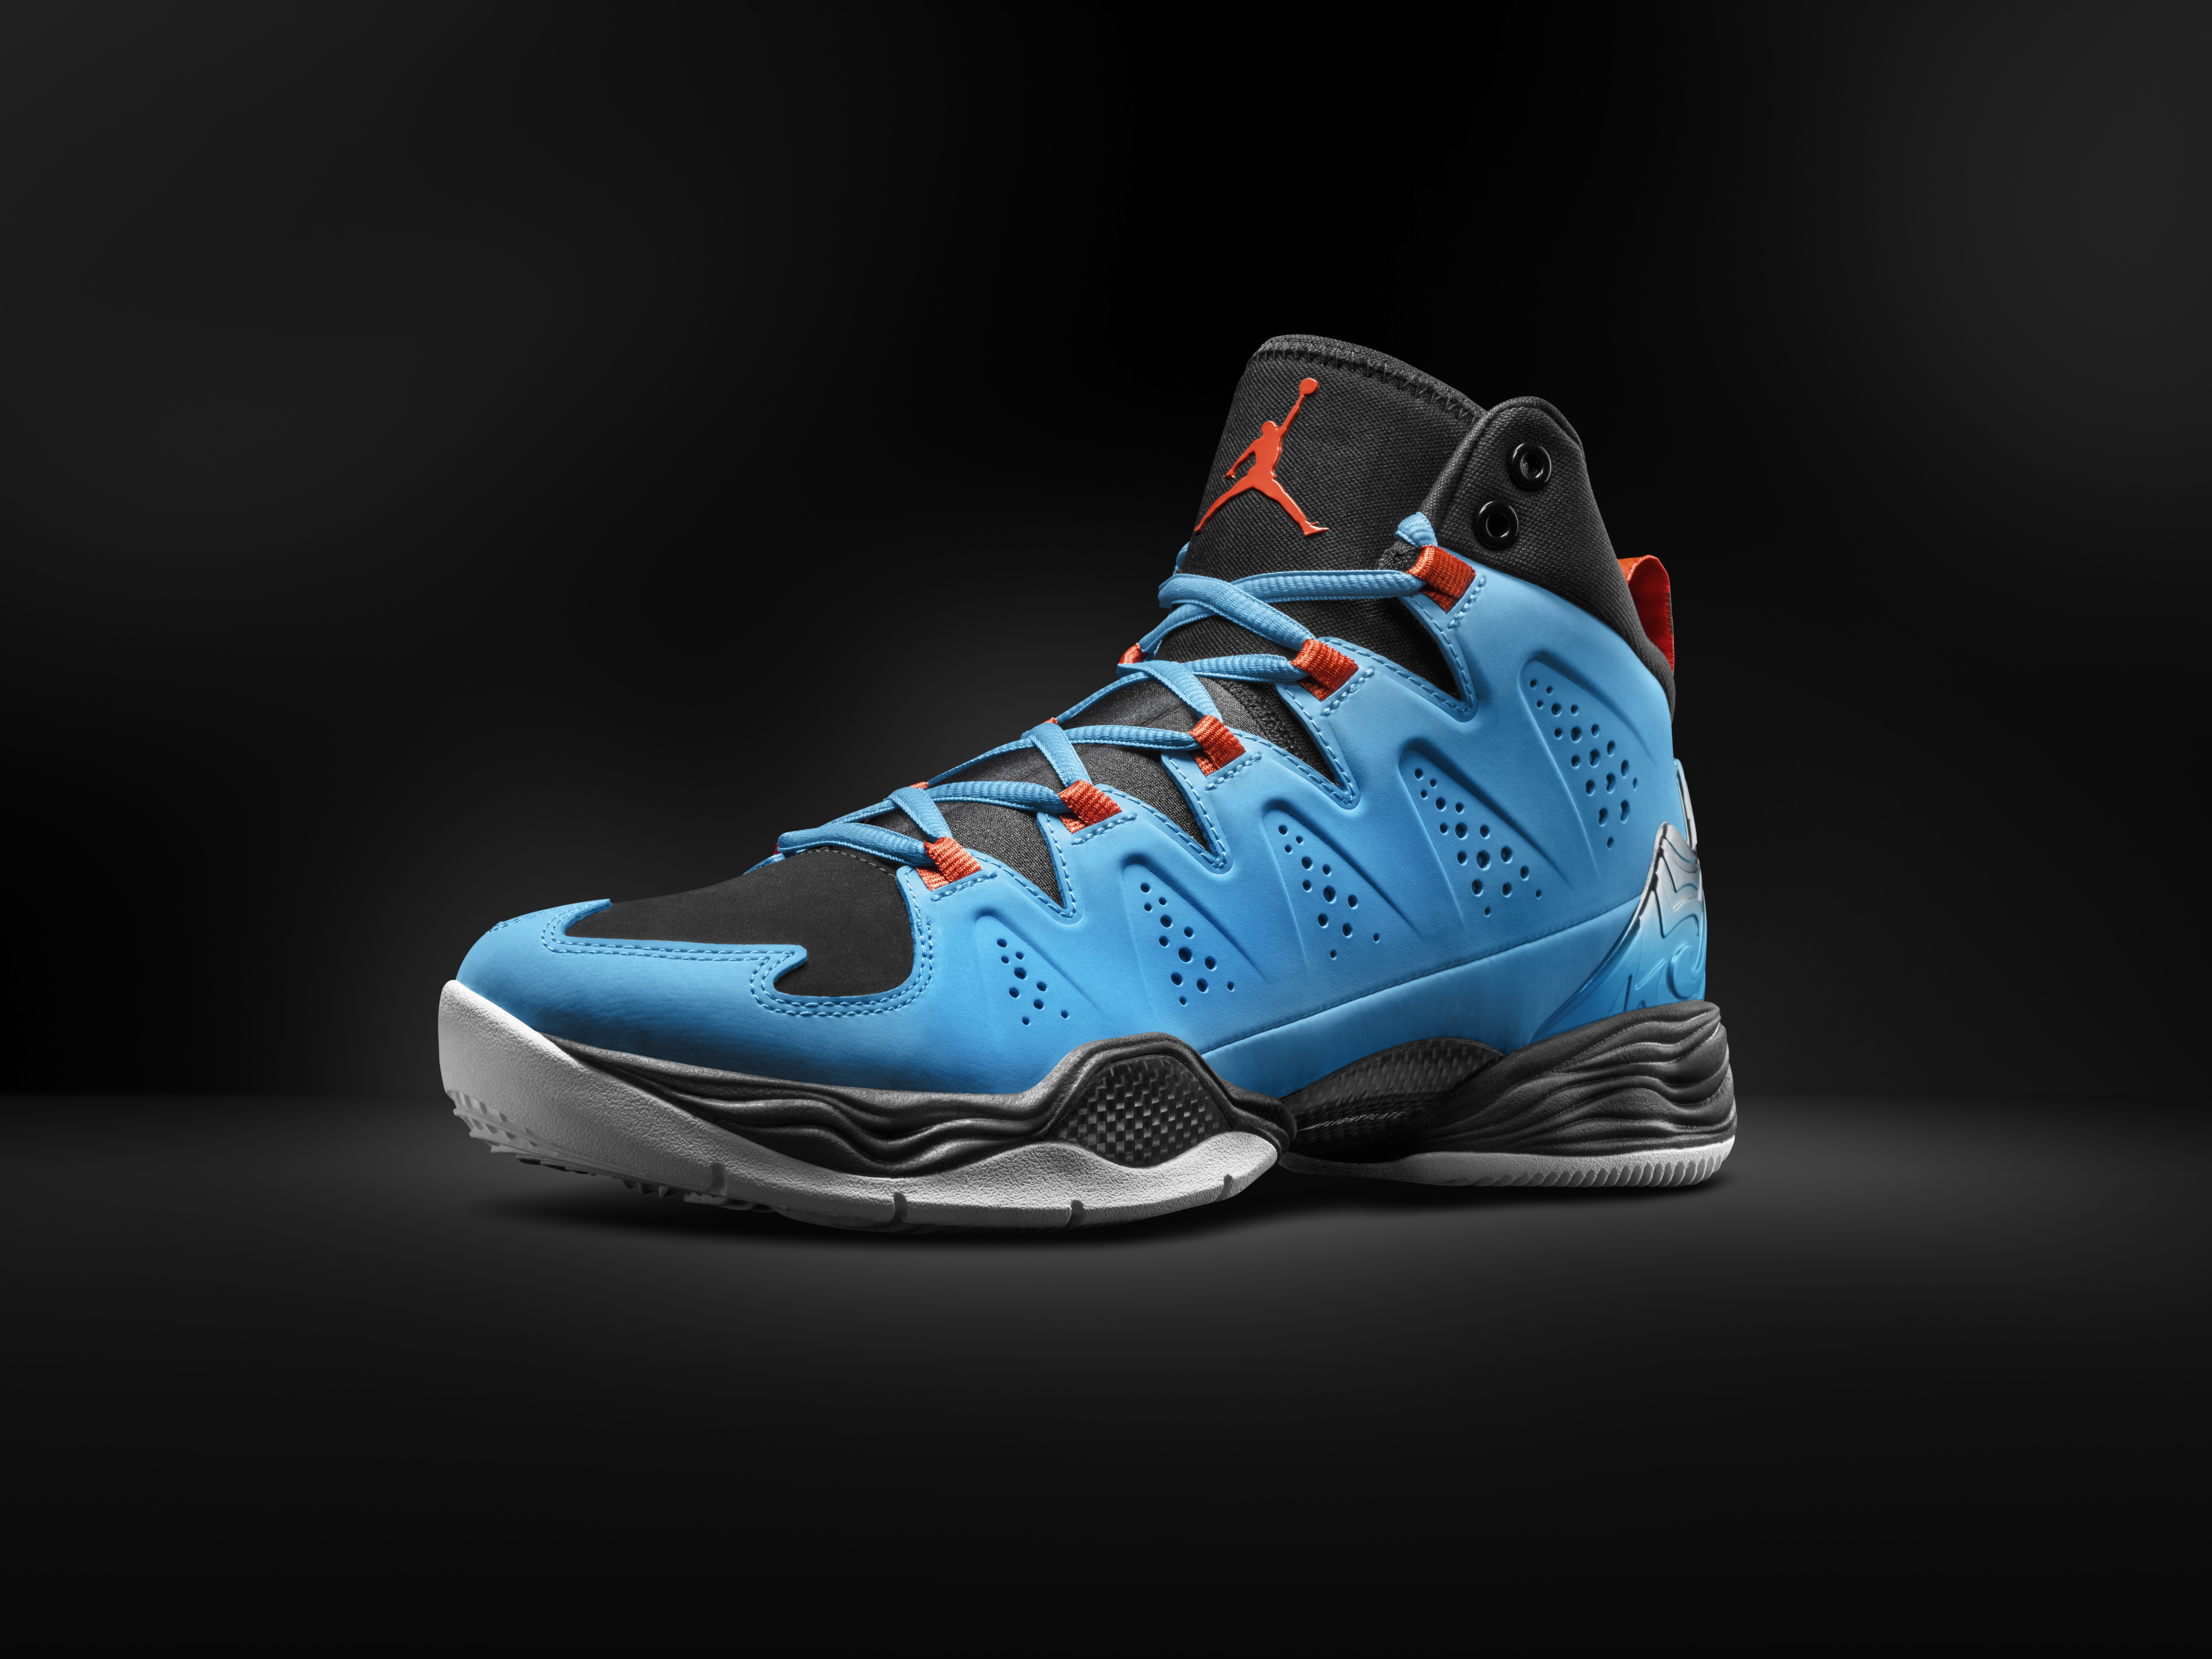 The Jordan Brand and Carmelo Anthony Celebrate 10 Years With The Launch of  the Jordan Melo